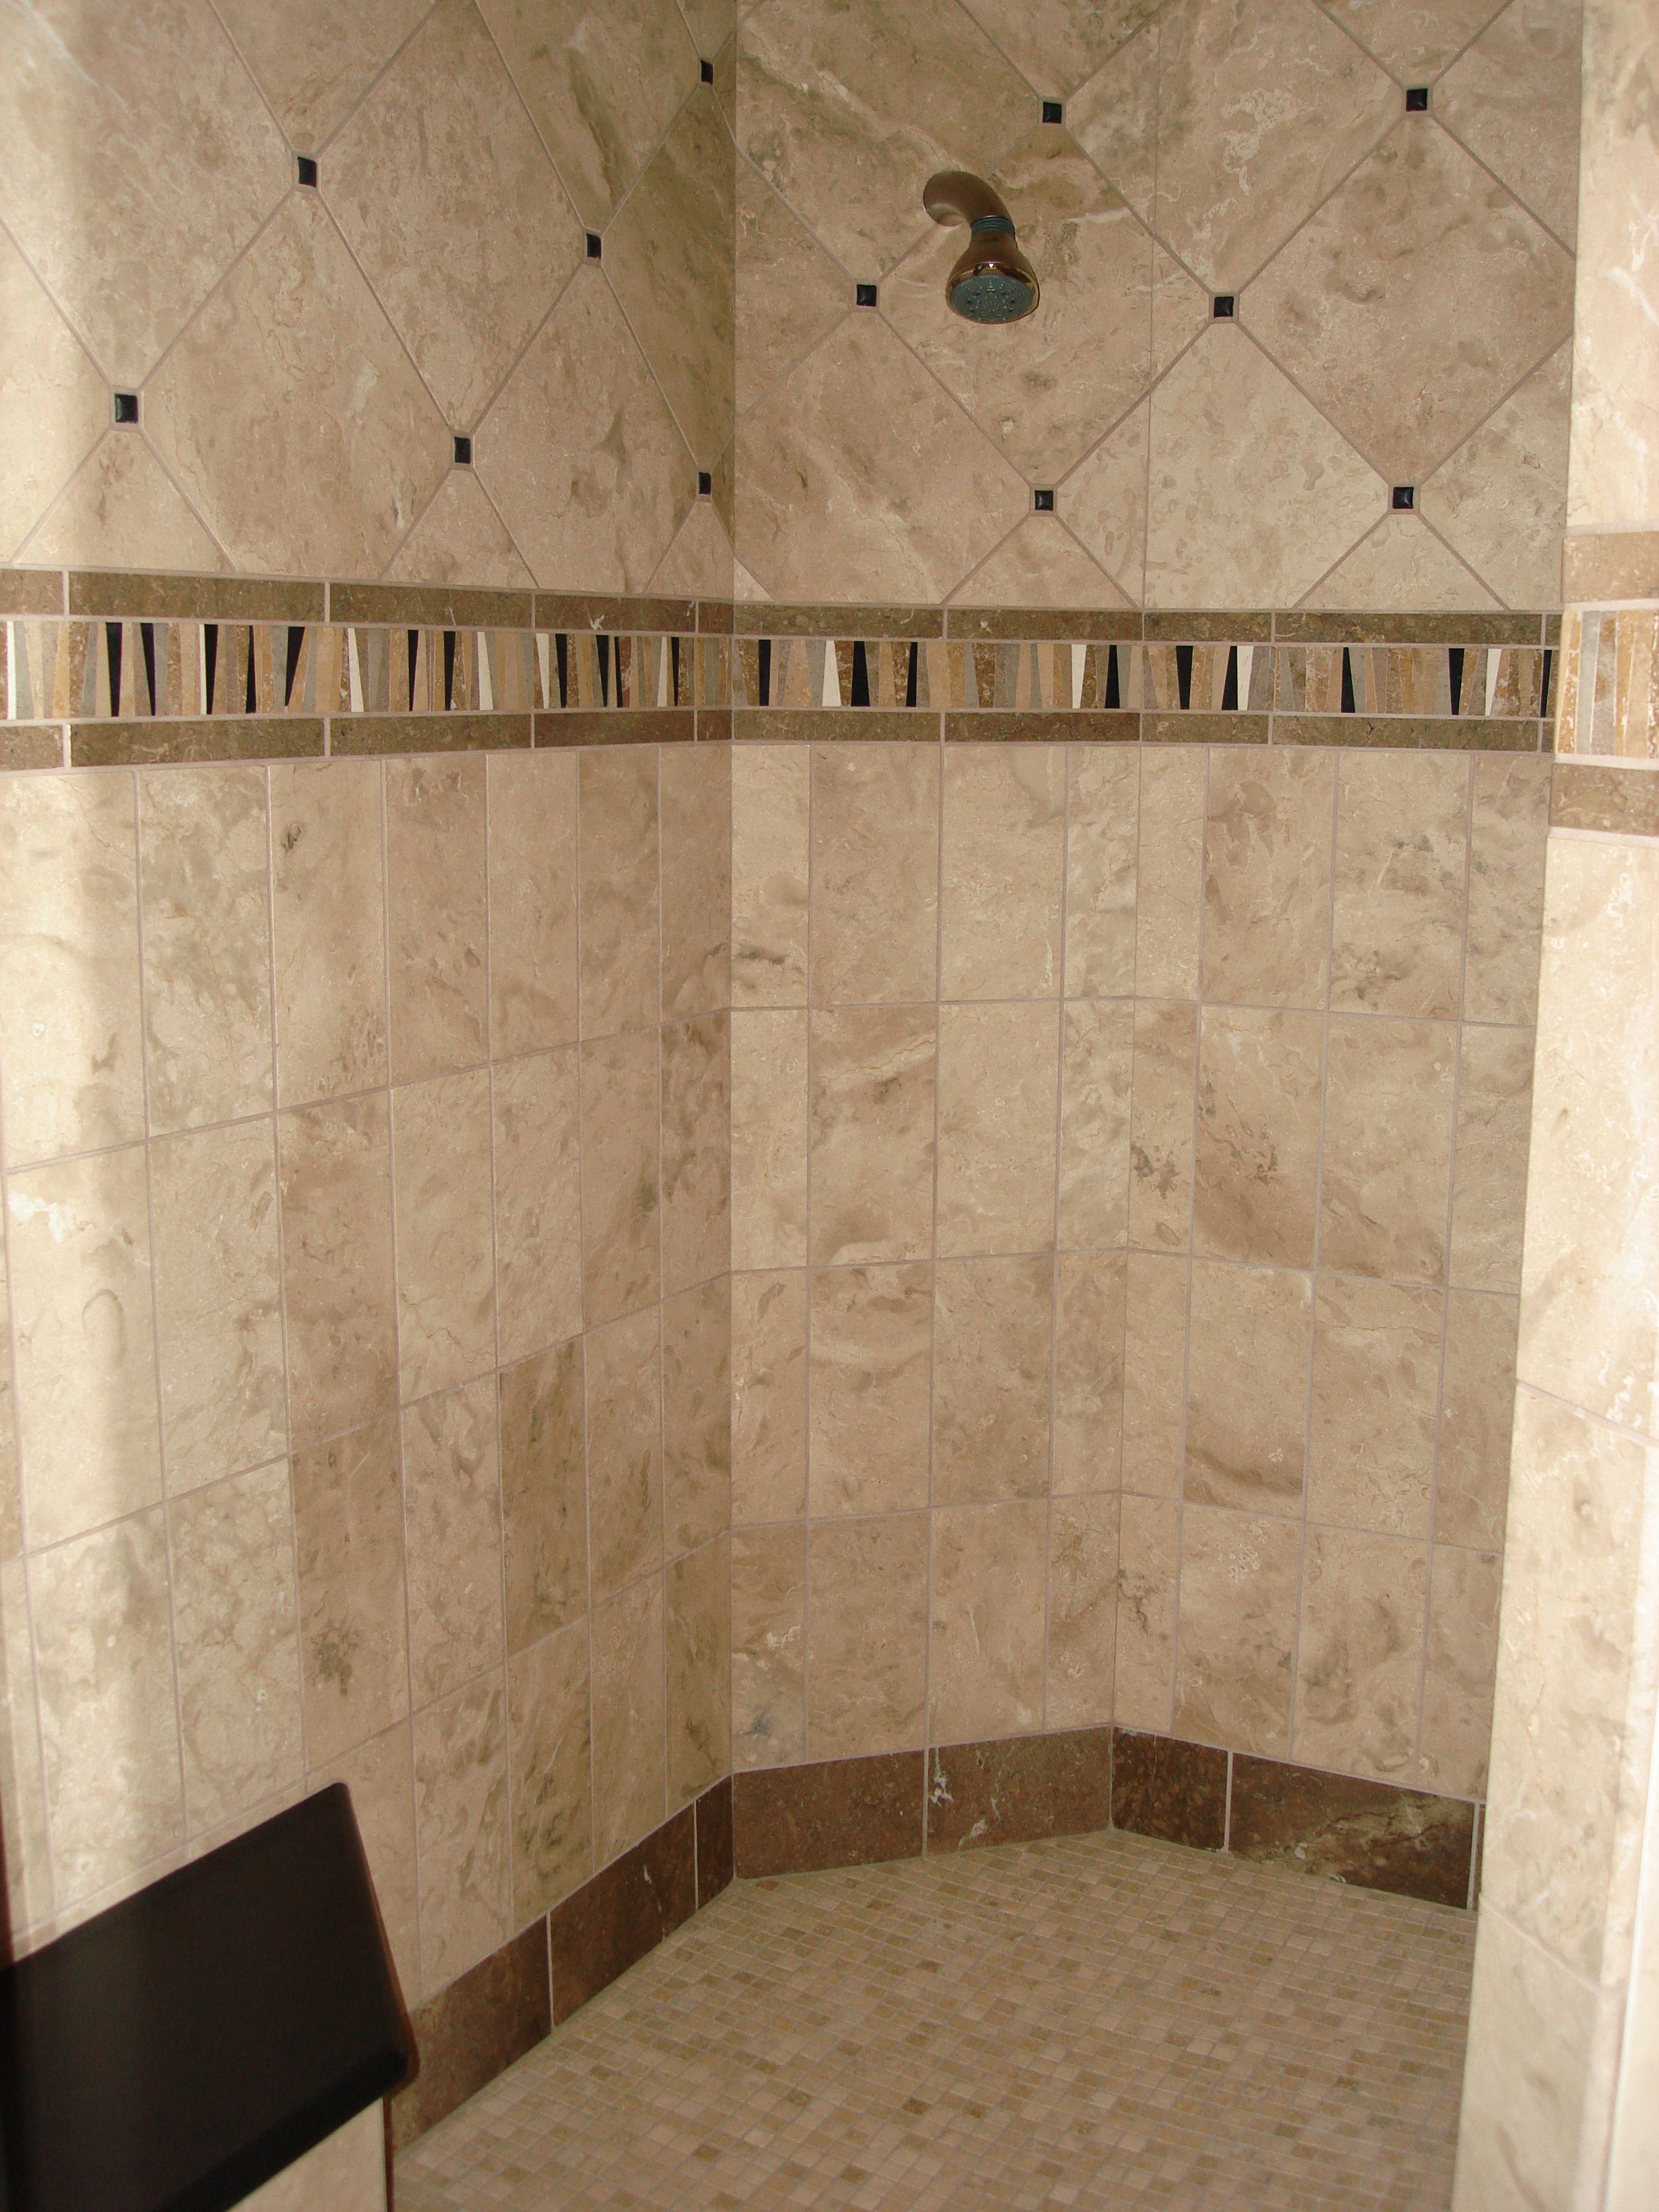 1000 images about shower tile ideas on pinterestshower tiles - Bathroom Wall Tiles Design Ideas